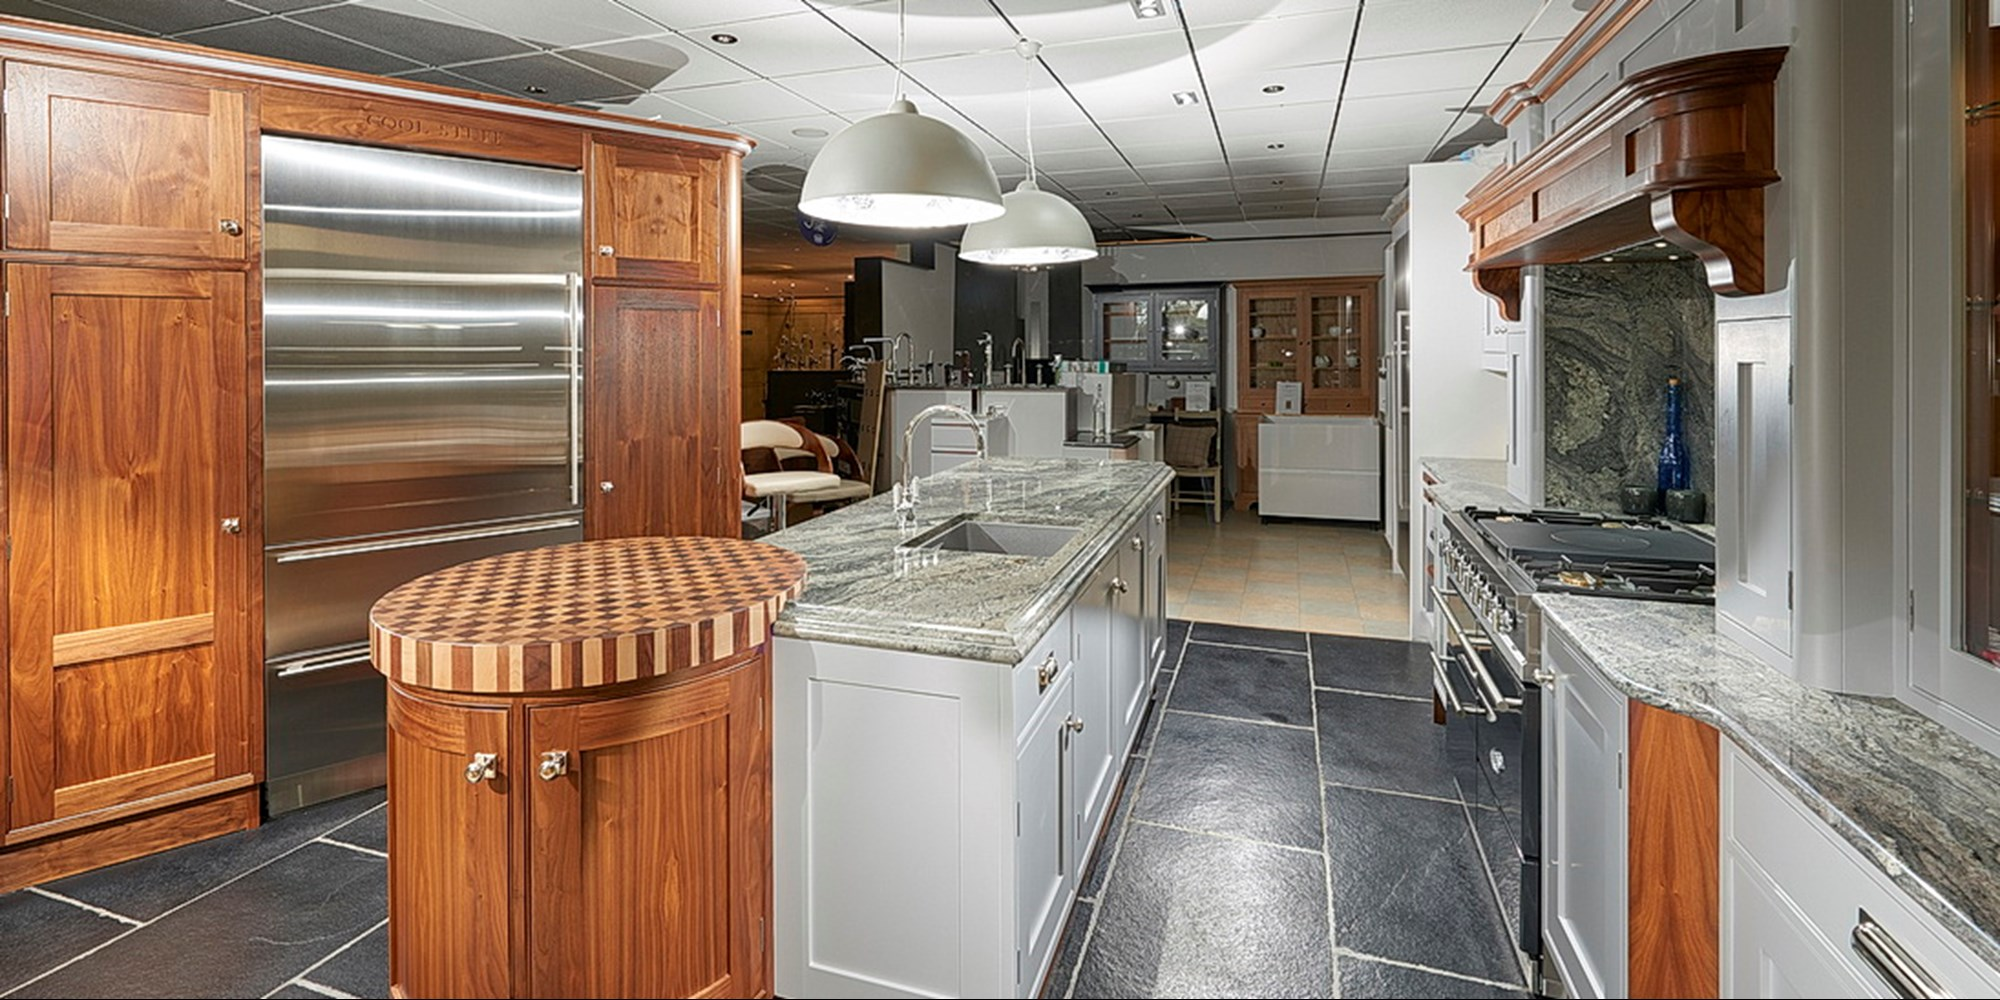 Showroomkitchen2.jpg